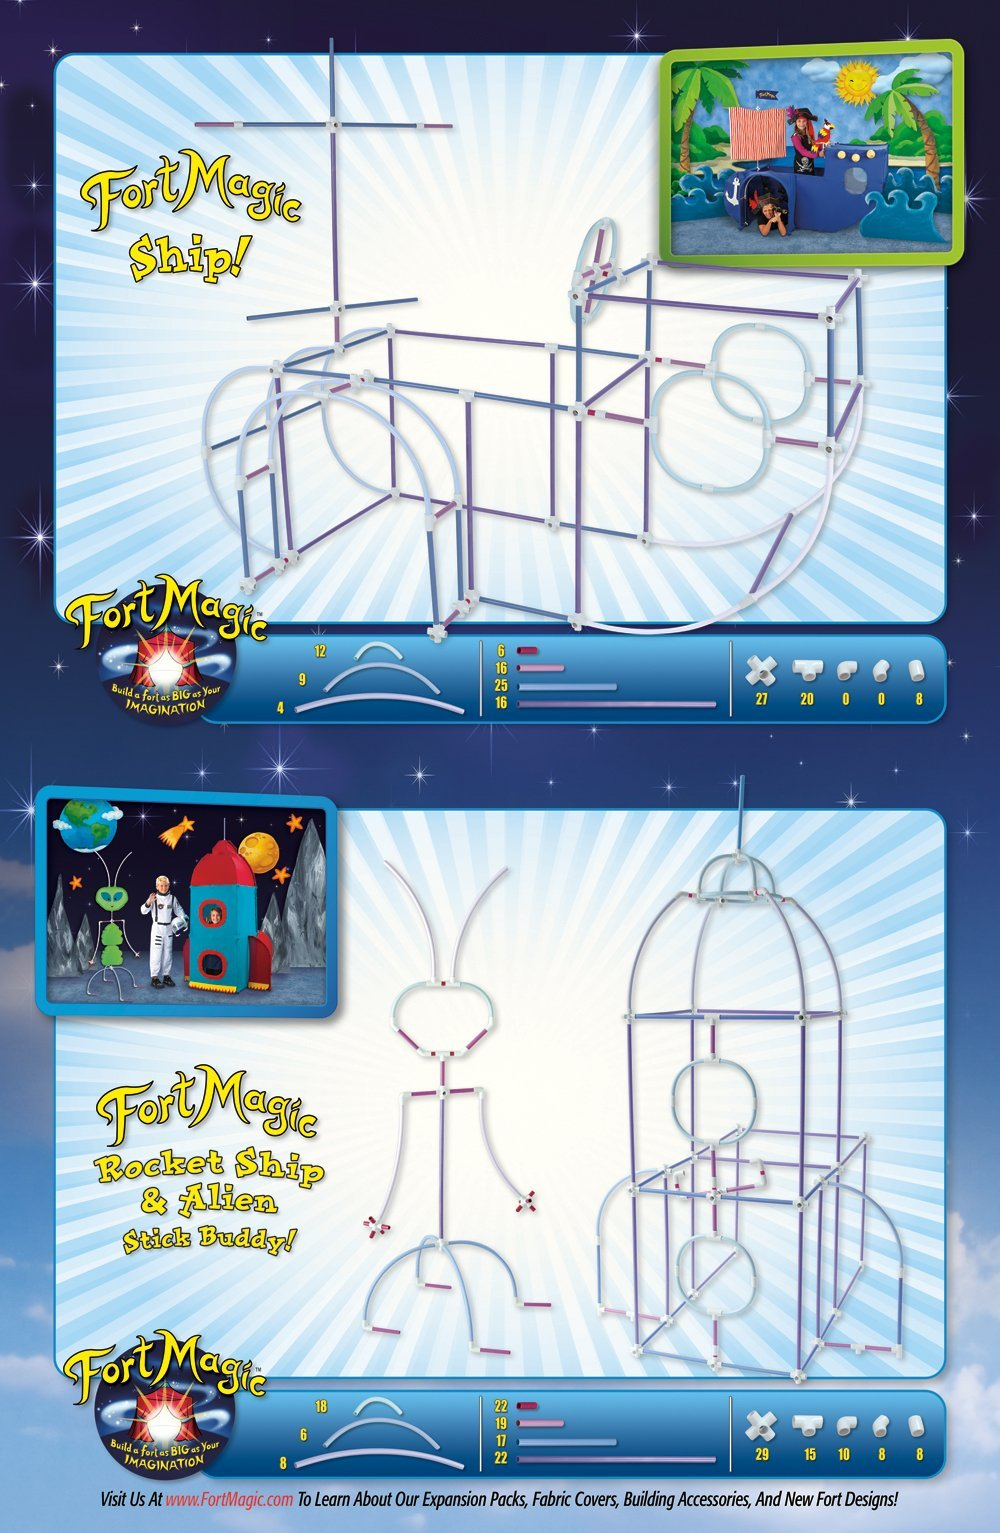 Fort Magic: Fort Building & Construction Toy Kit by Fort Magic (Image #7)